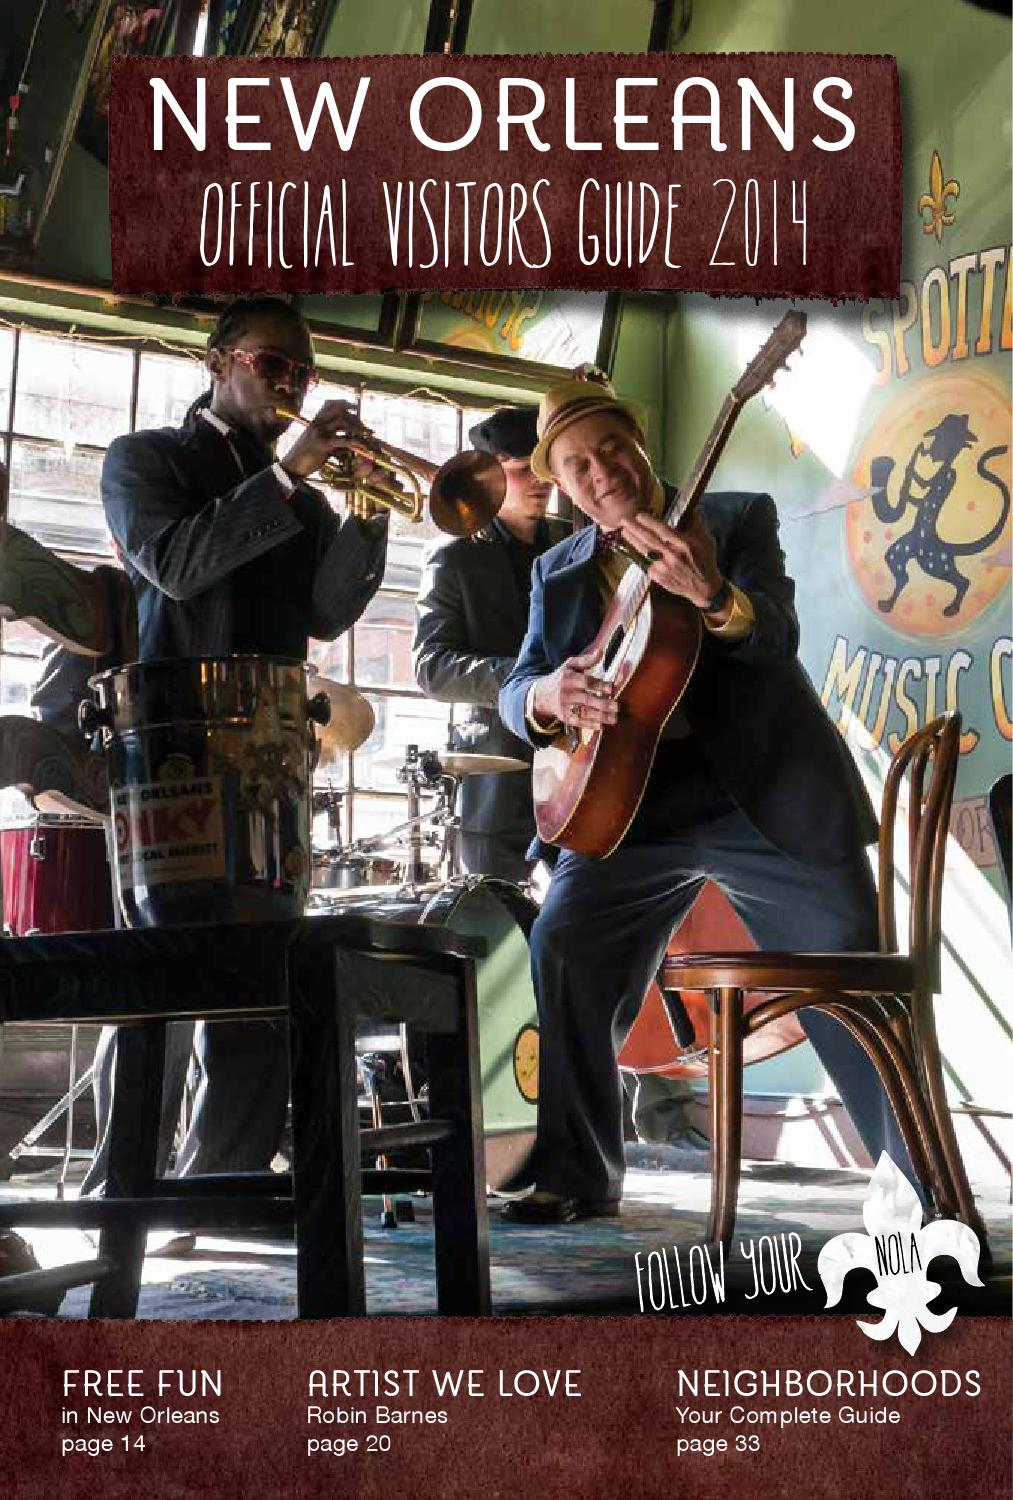 New orleans 2014 official visitors guide by new orleans tourism issuu